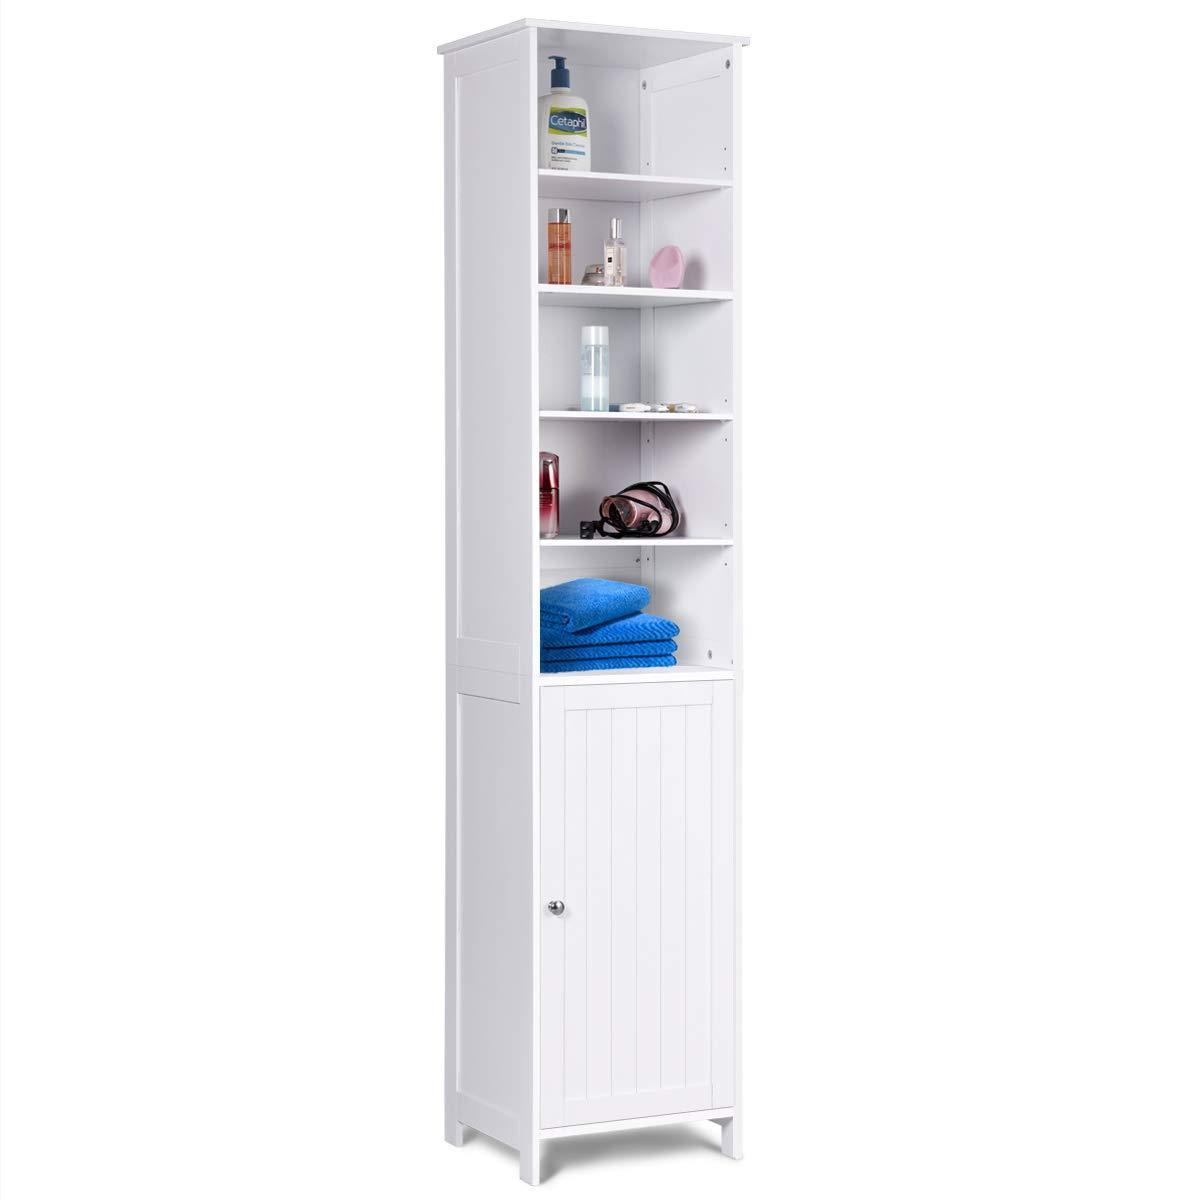 Online shopping 72 tall cabinet waterjoy standing tall storage cabinet wooden white bathroom cupboard with door and 5 adjustable shelves elegant and space saving